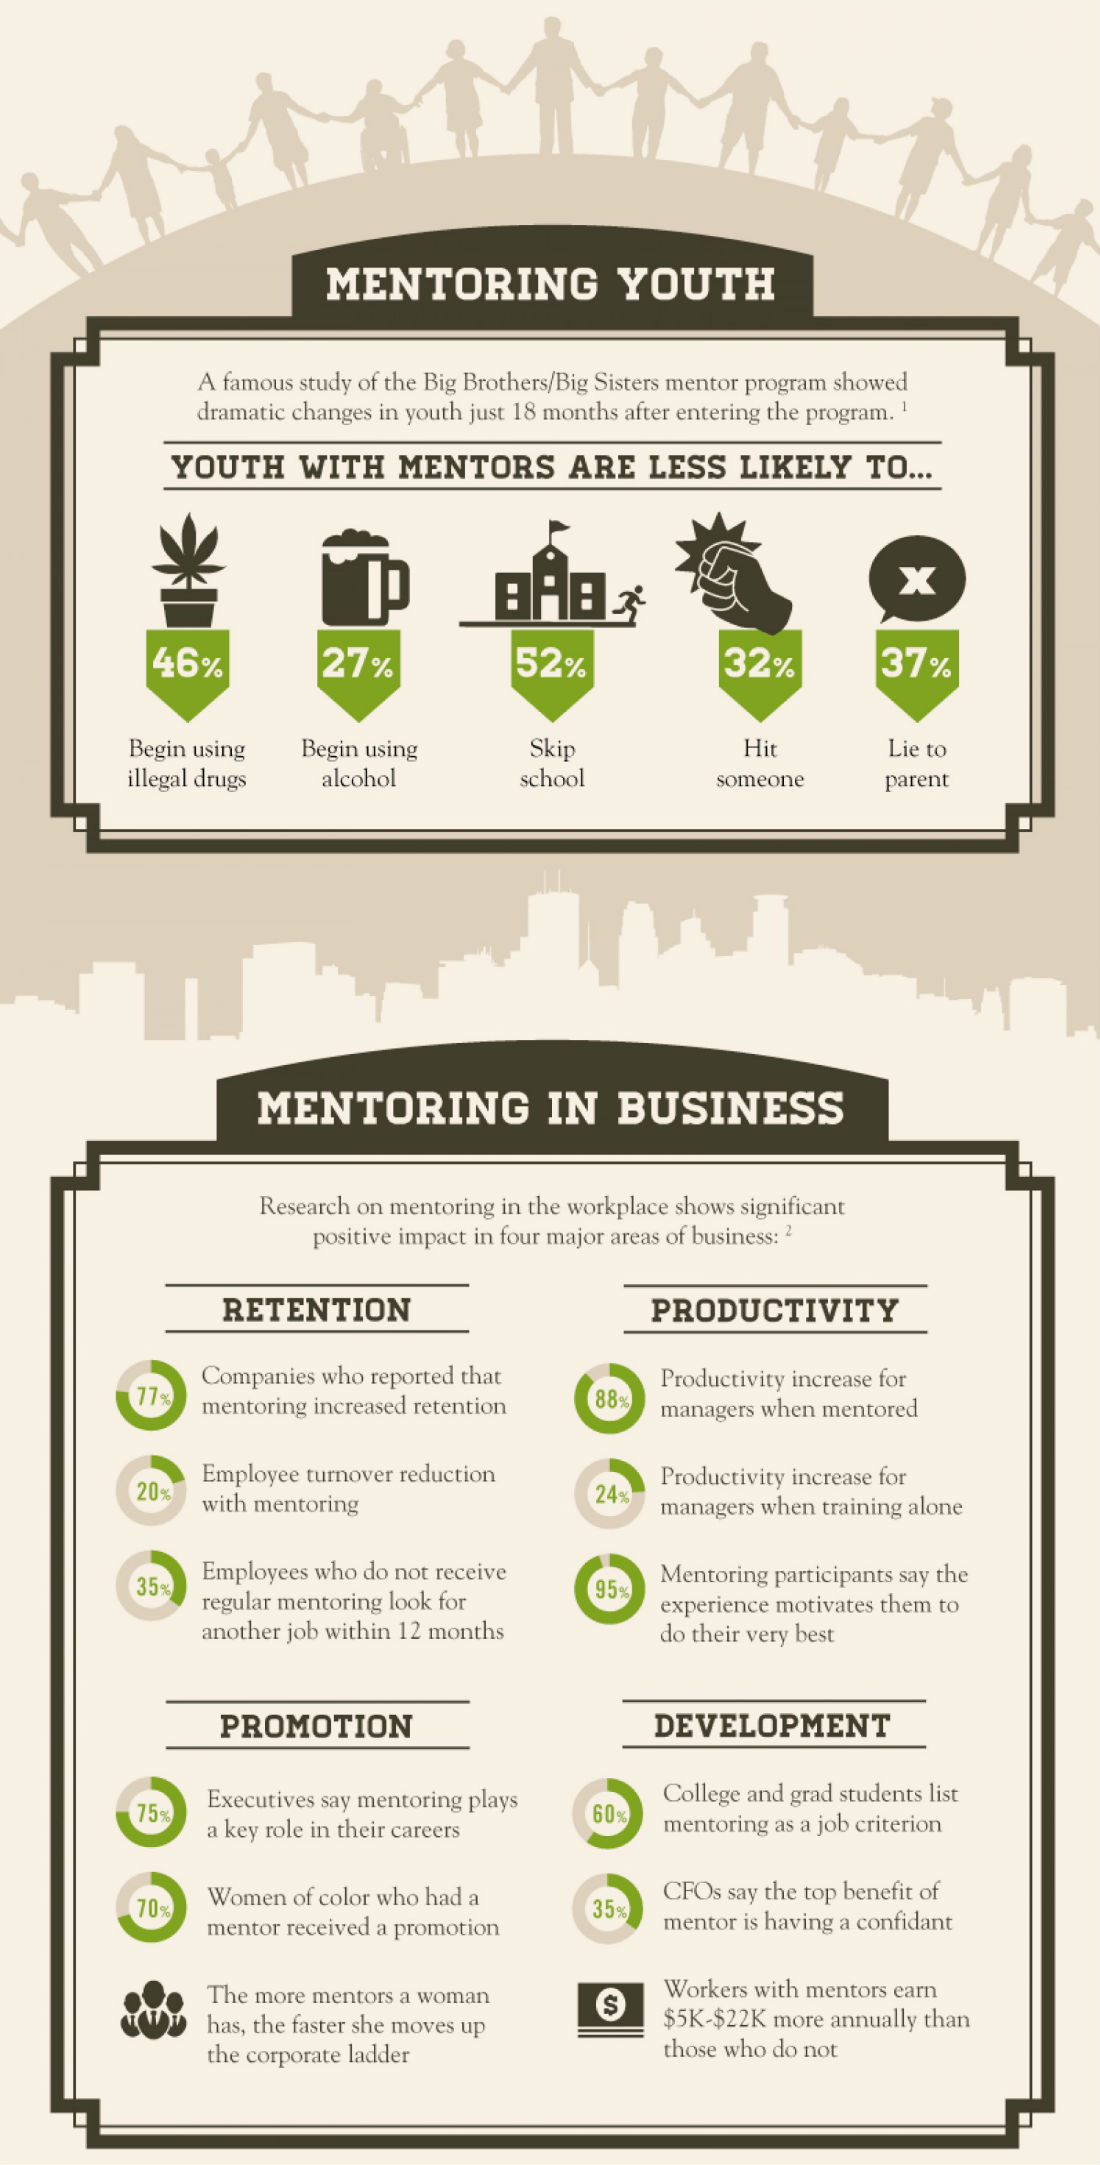 10 reasons why mentoring make a difference in the lives of youth: Mentoring Infographic